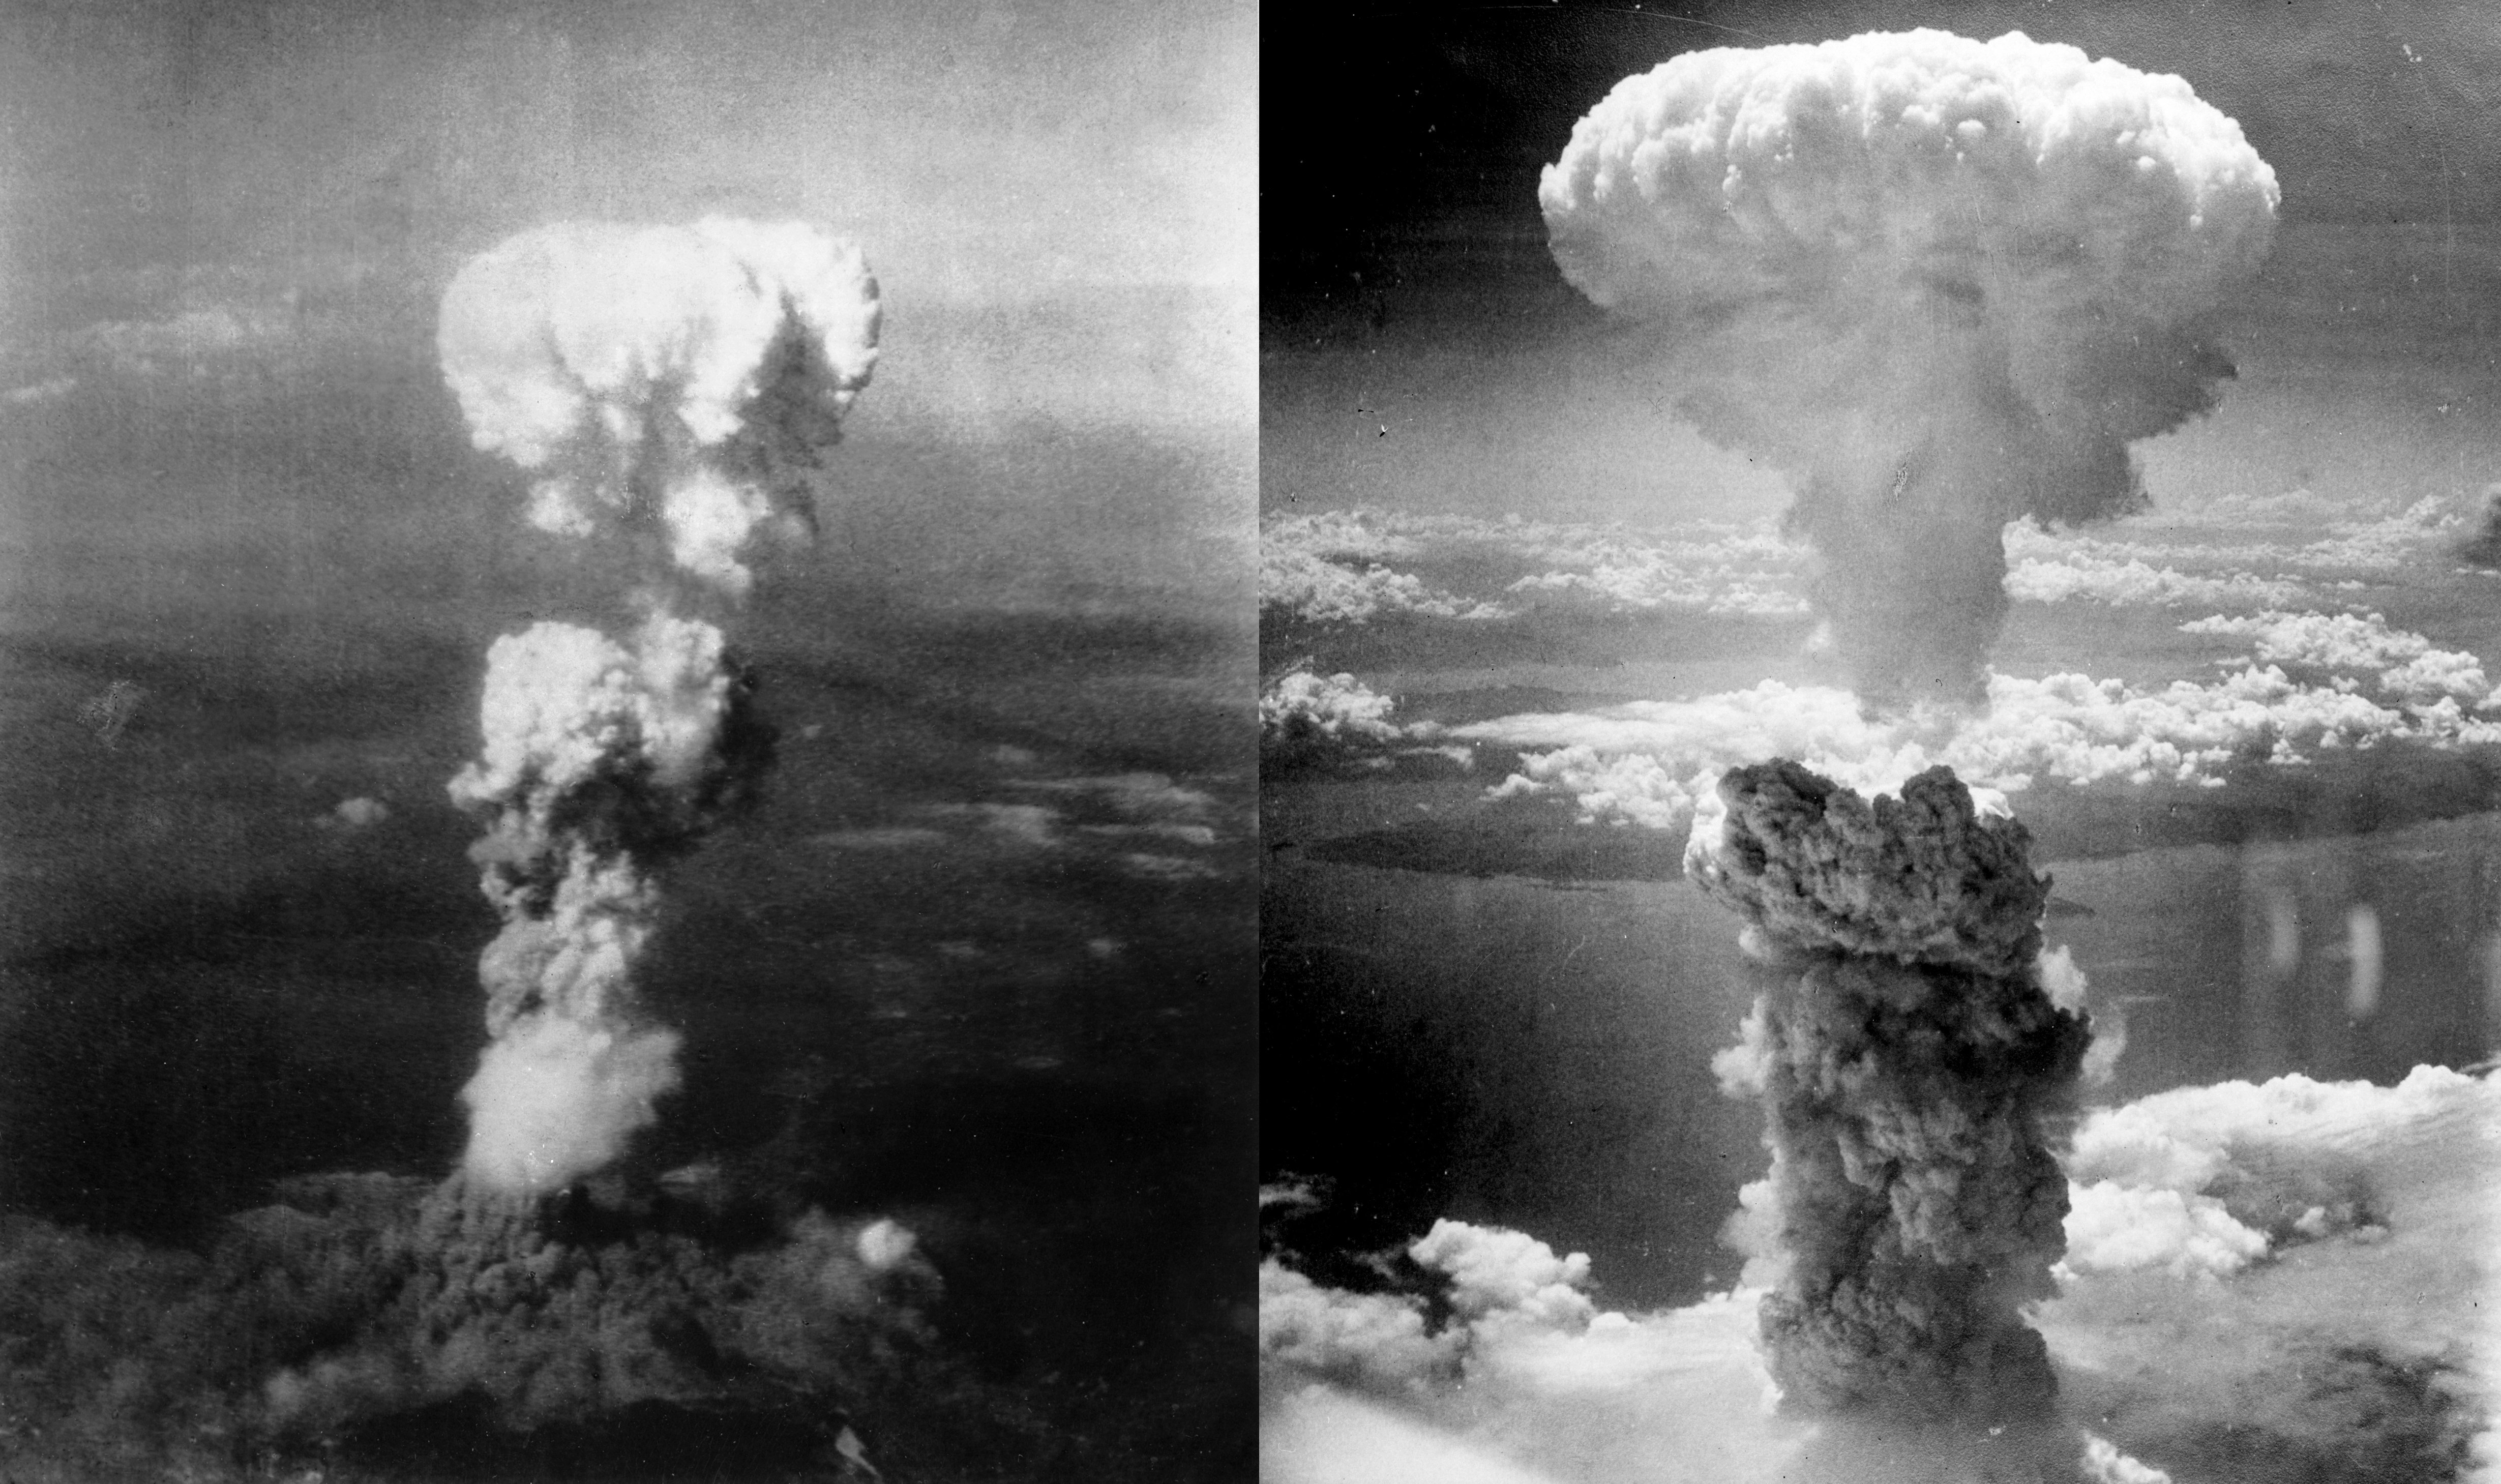 essays on hiroshima bombing Was the atomic bombings of hiroshima and nagasaki justified after the drop of the uranium bomb in hiroshima haven't found the essay you want.